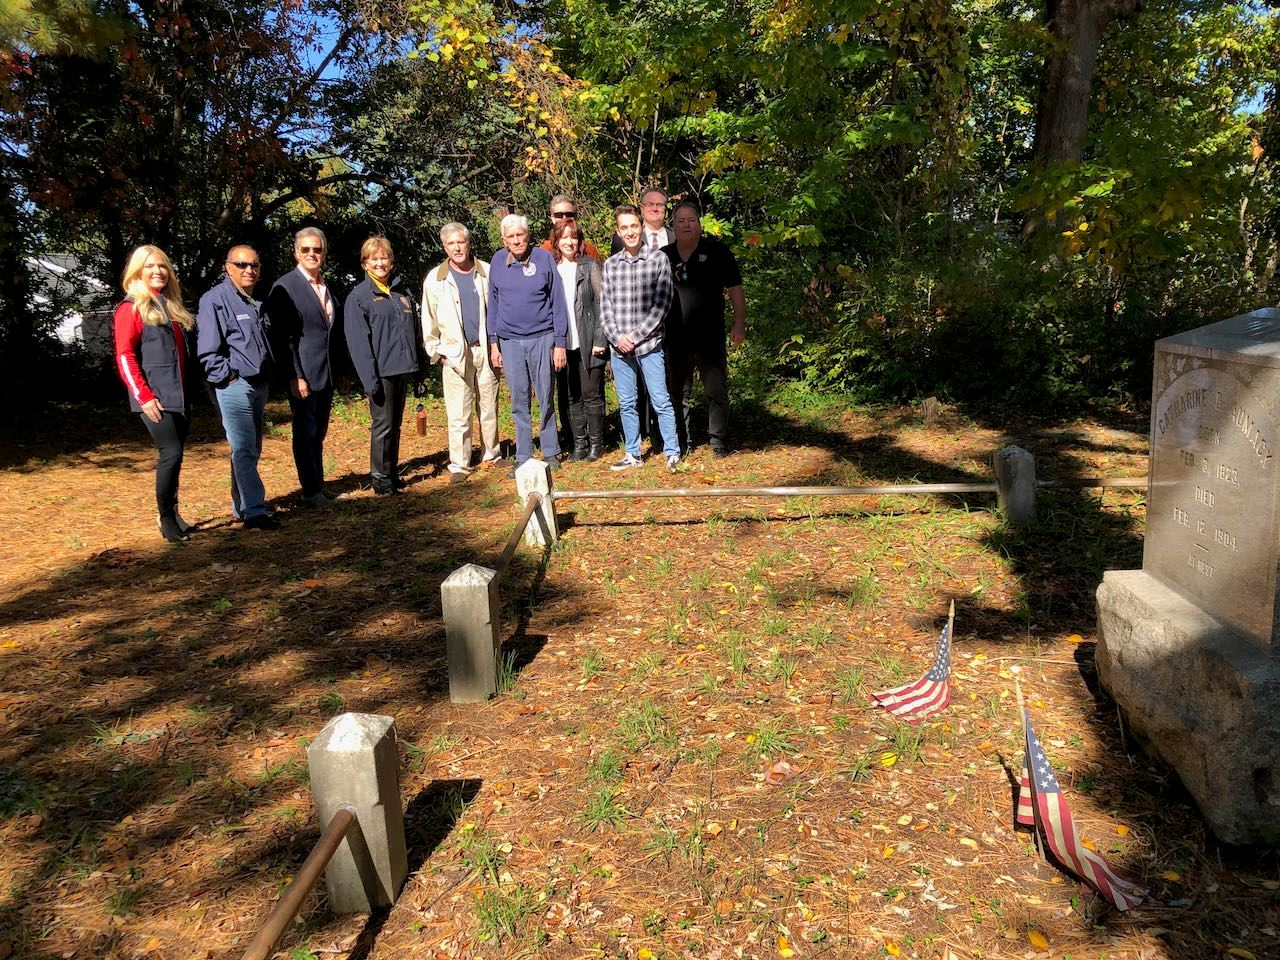 County and Hazlet officials visit the Aumack Cemetery and meet the family